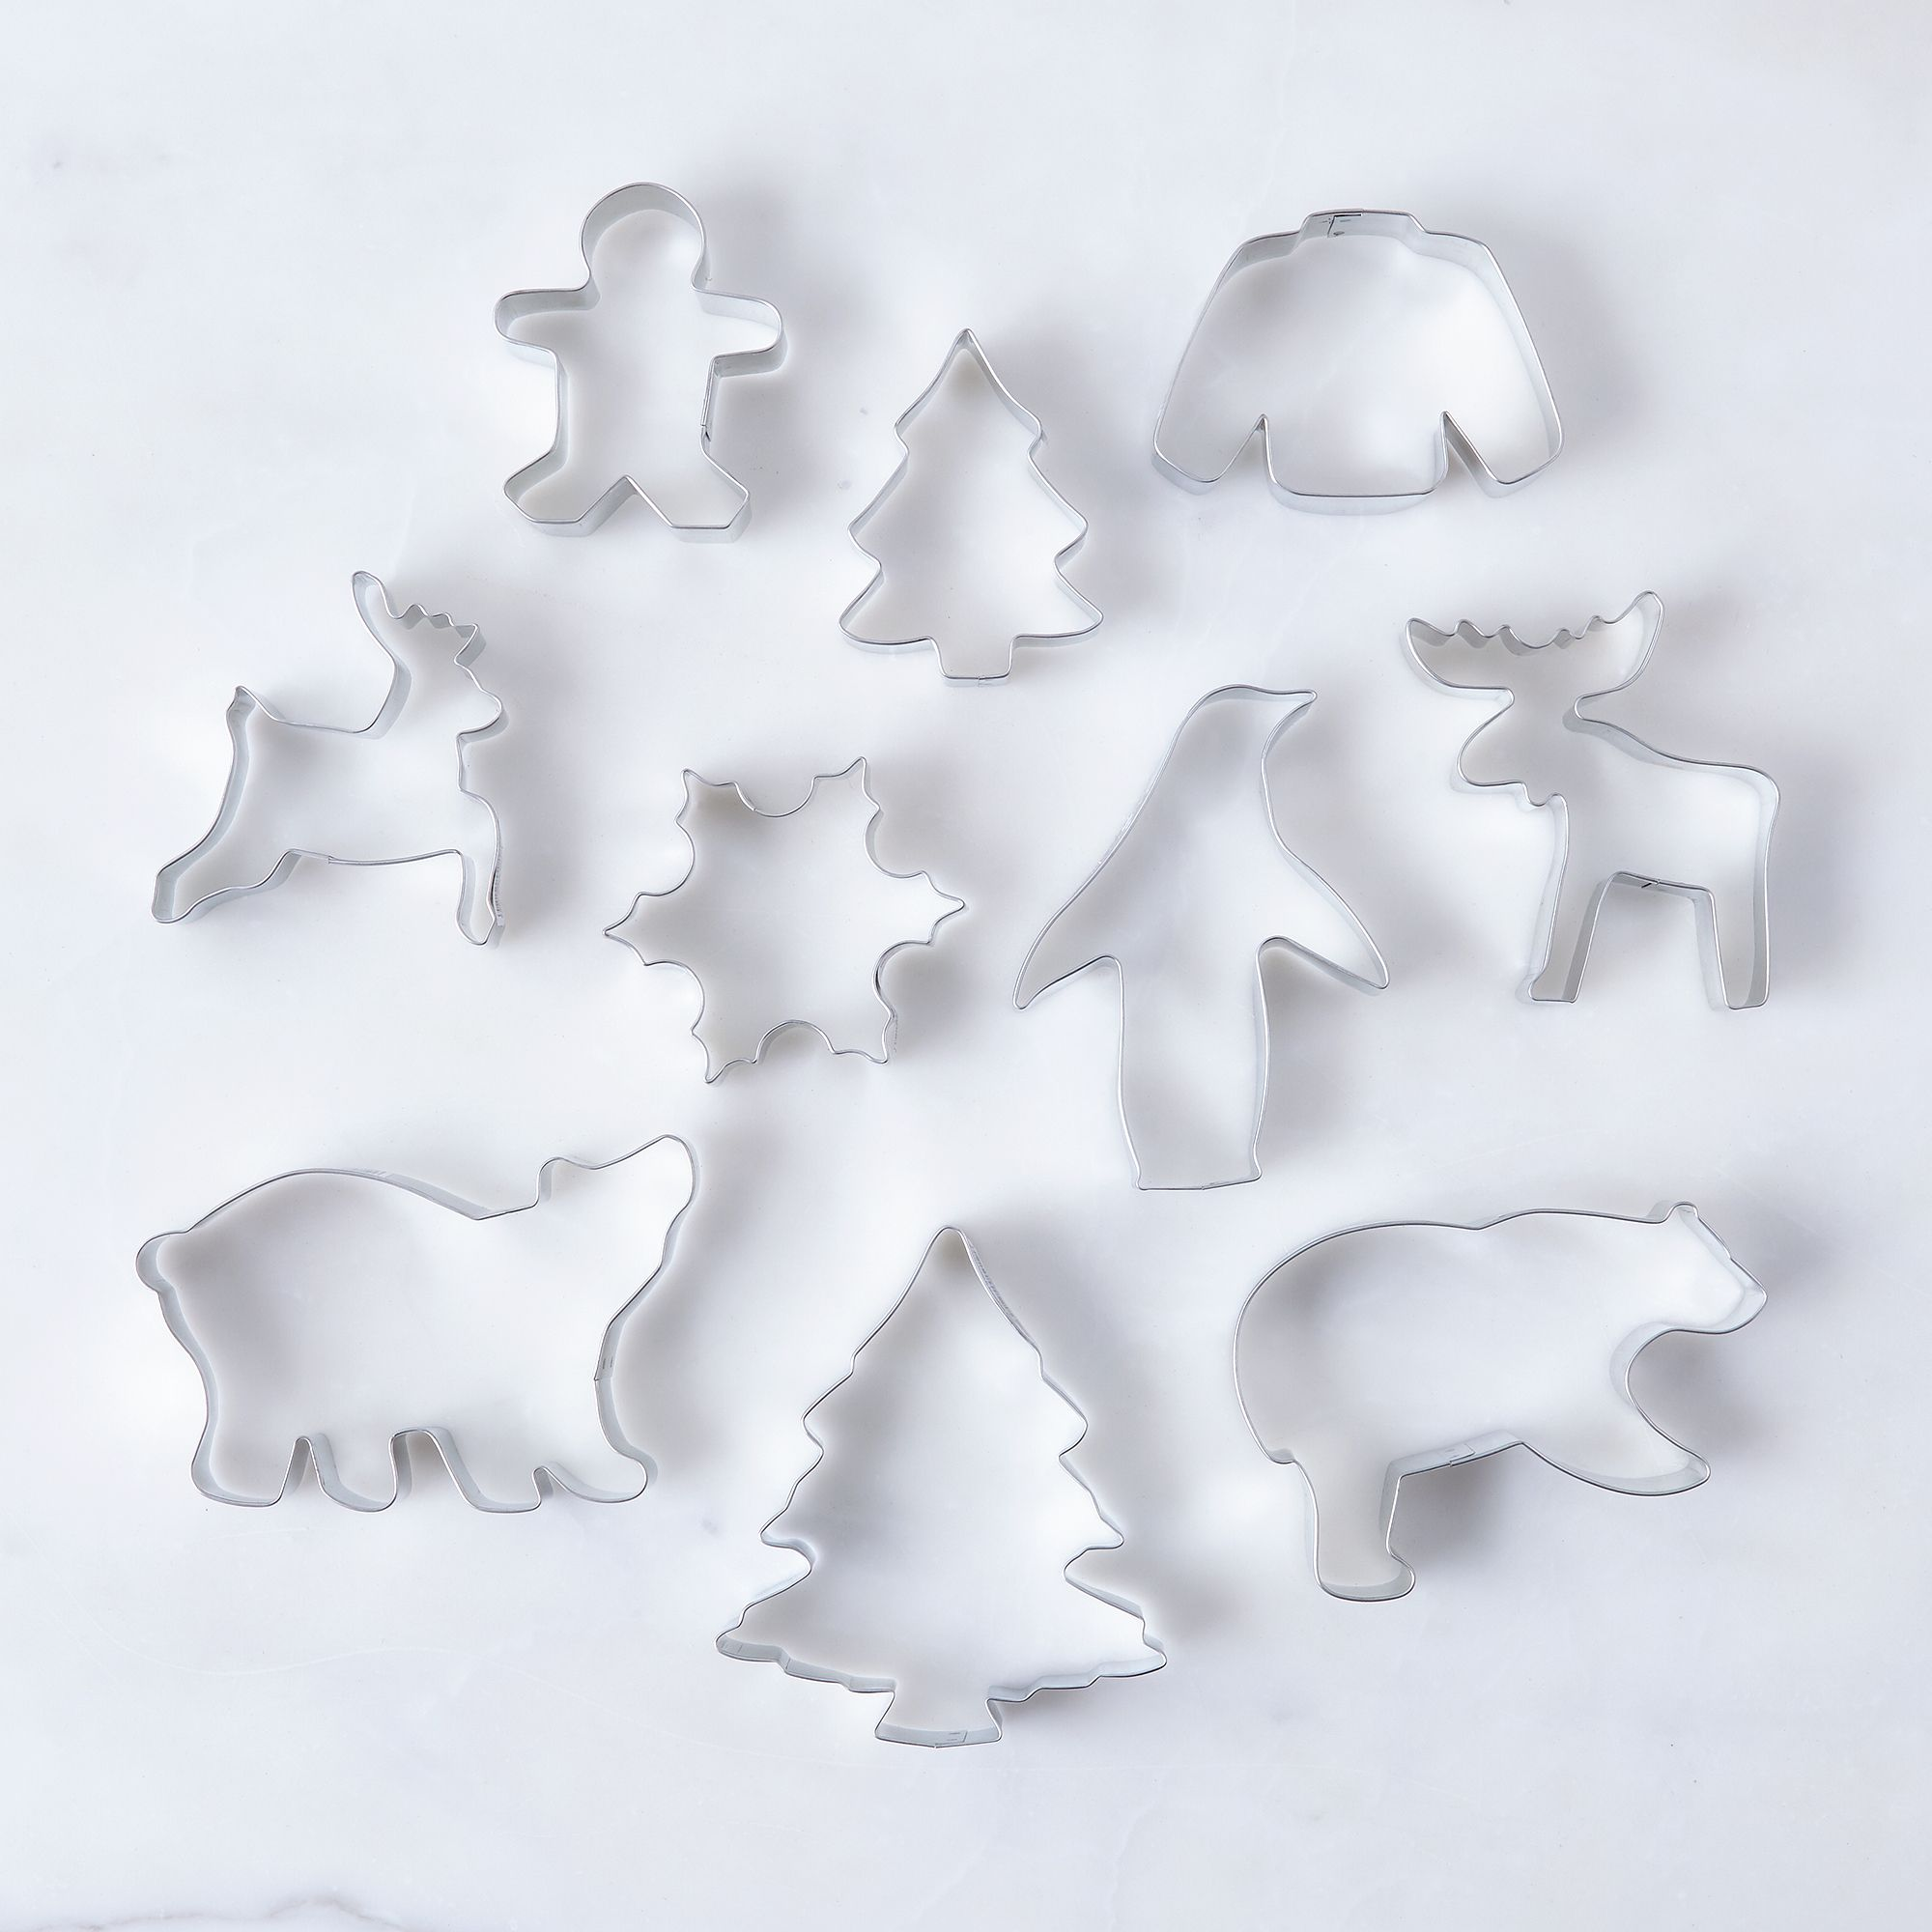 B0d70784 a735 4376 bb23 7e83a6b6d417  2016 0909 ann clark cookie cutter winter cookie cutter set of 10 silo rocky luten 218